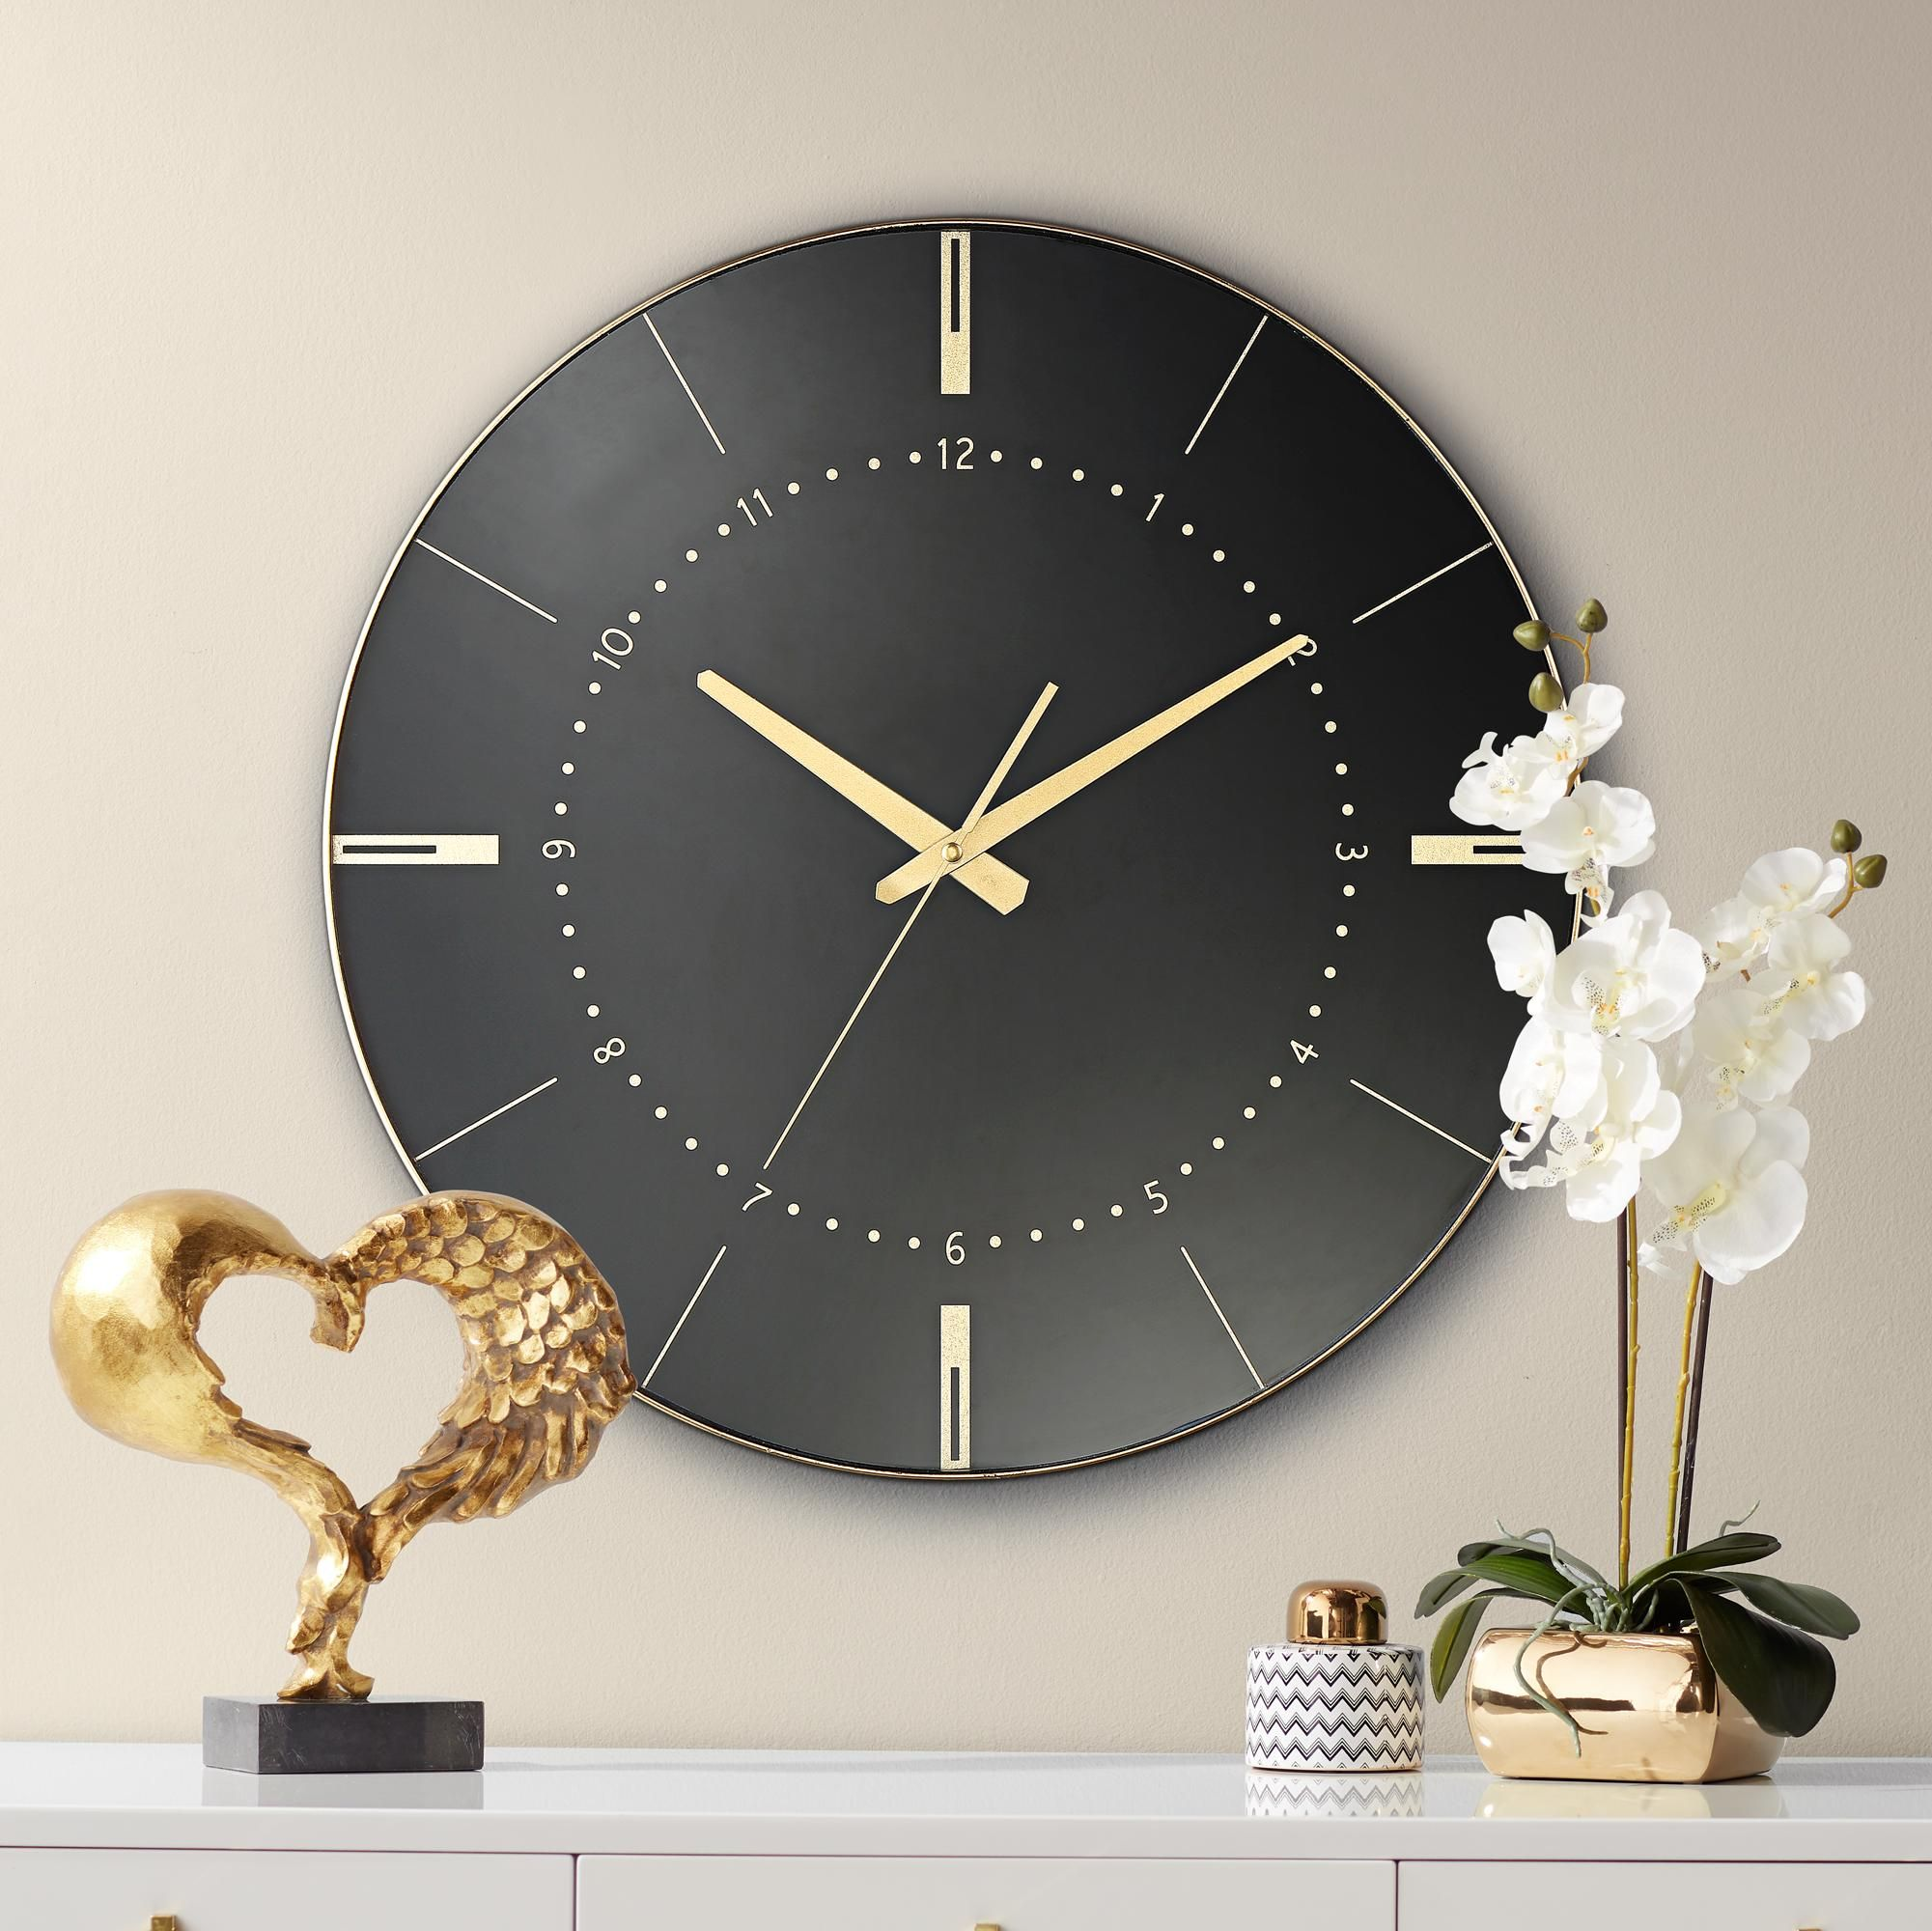 Clocks Liyana Black And Gold 17 3 4 Round Wall Clock In 2020 Gold Wall Clock Wall Clock Round Wall Clocks